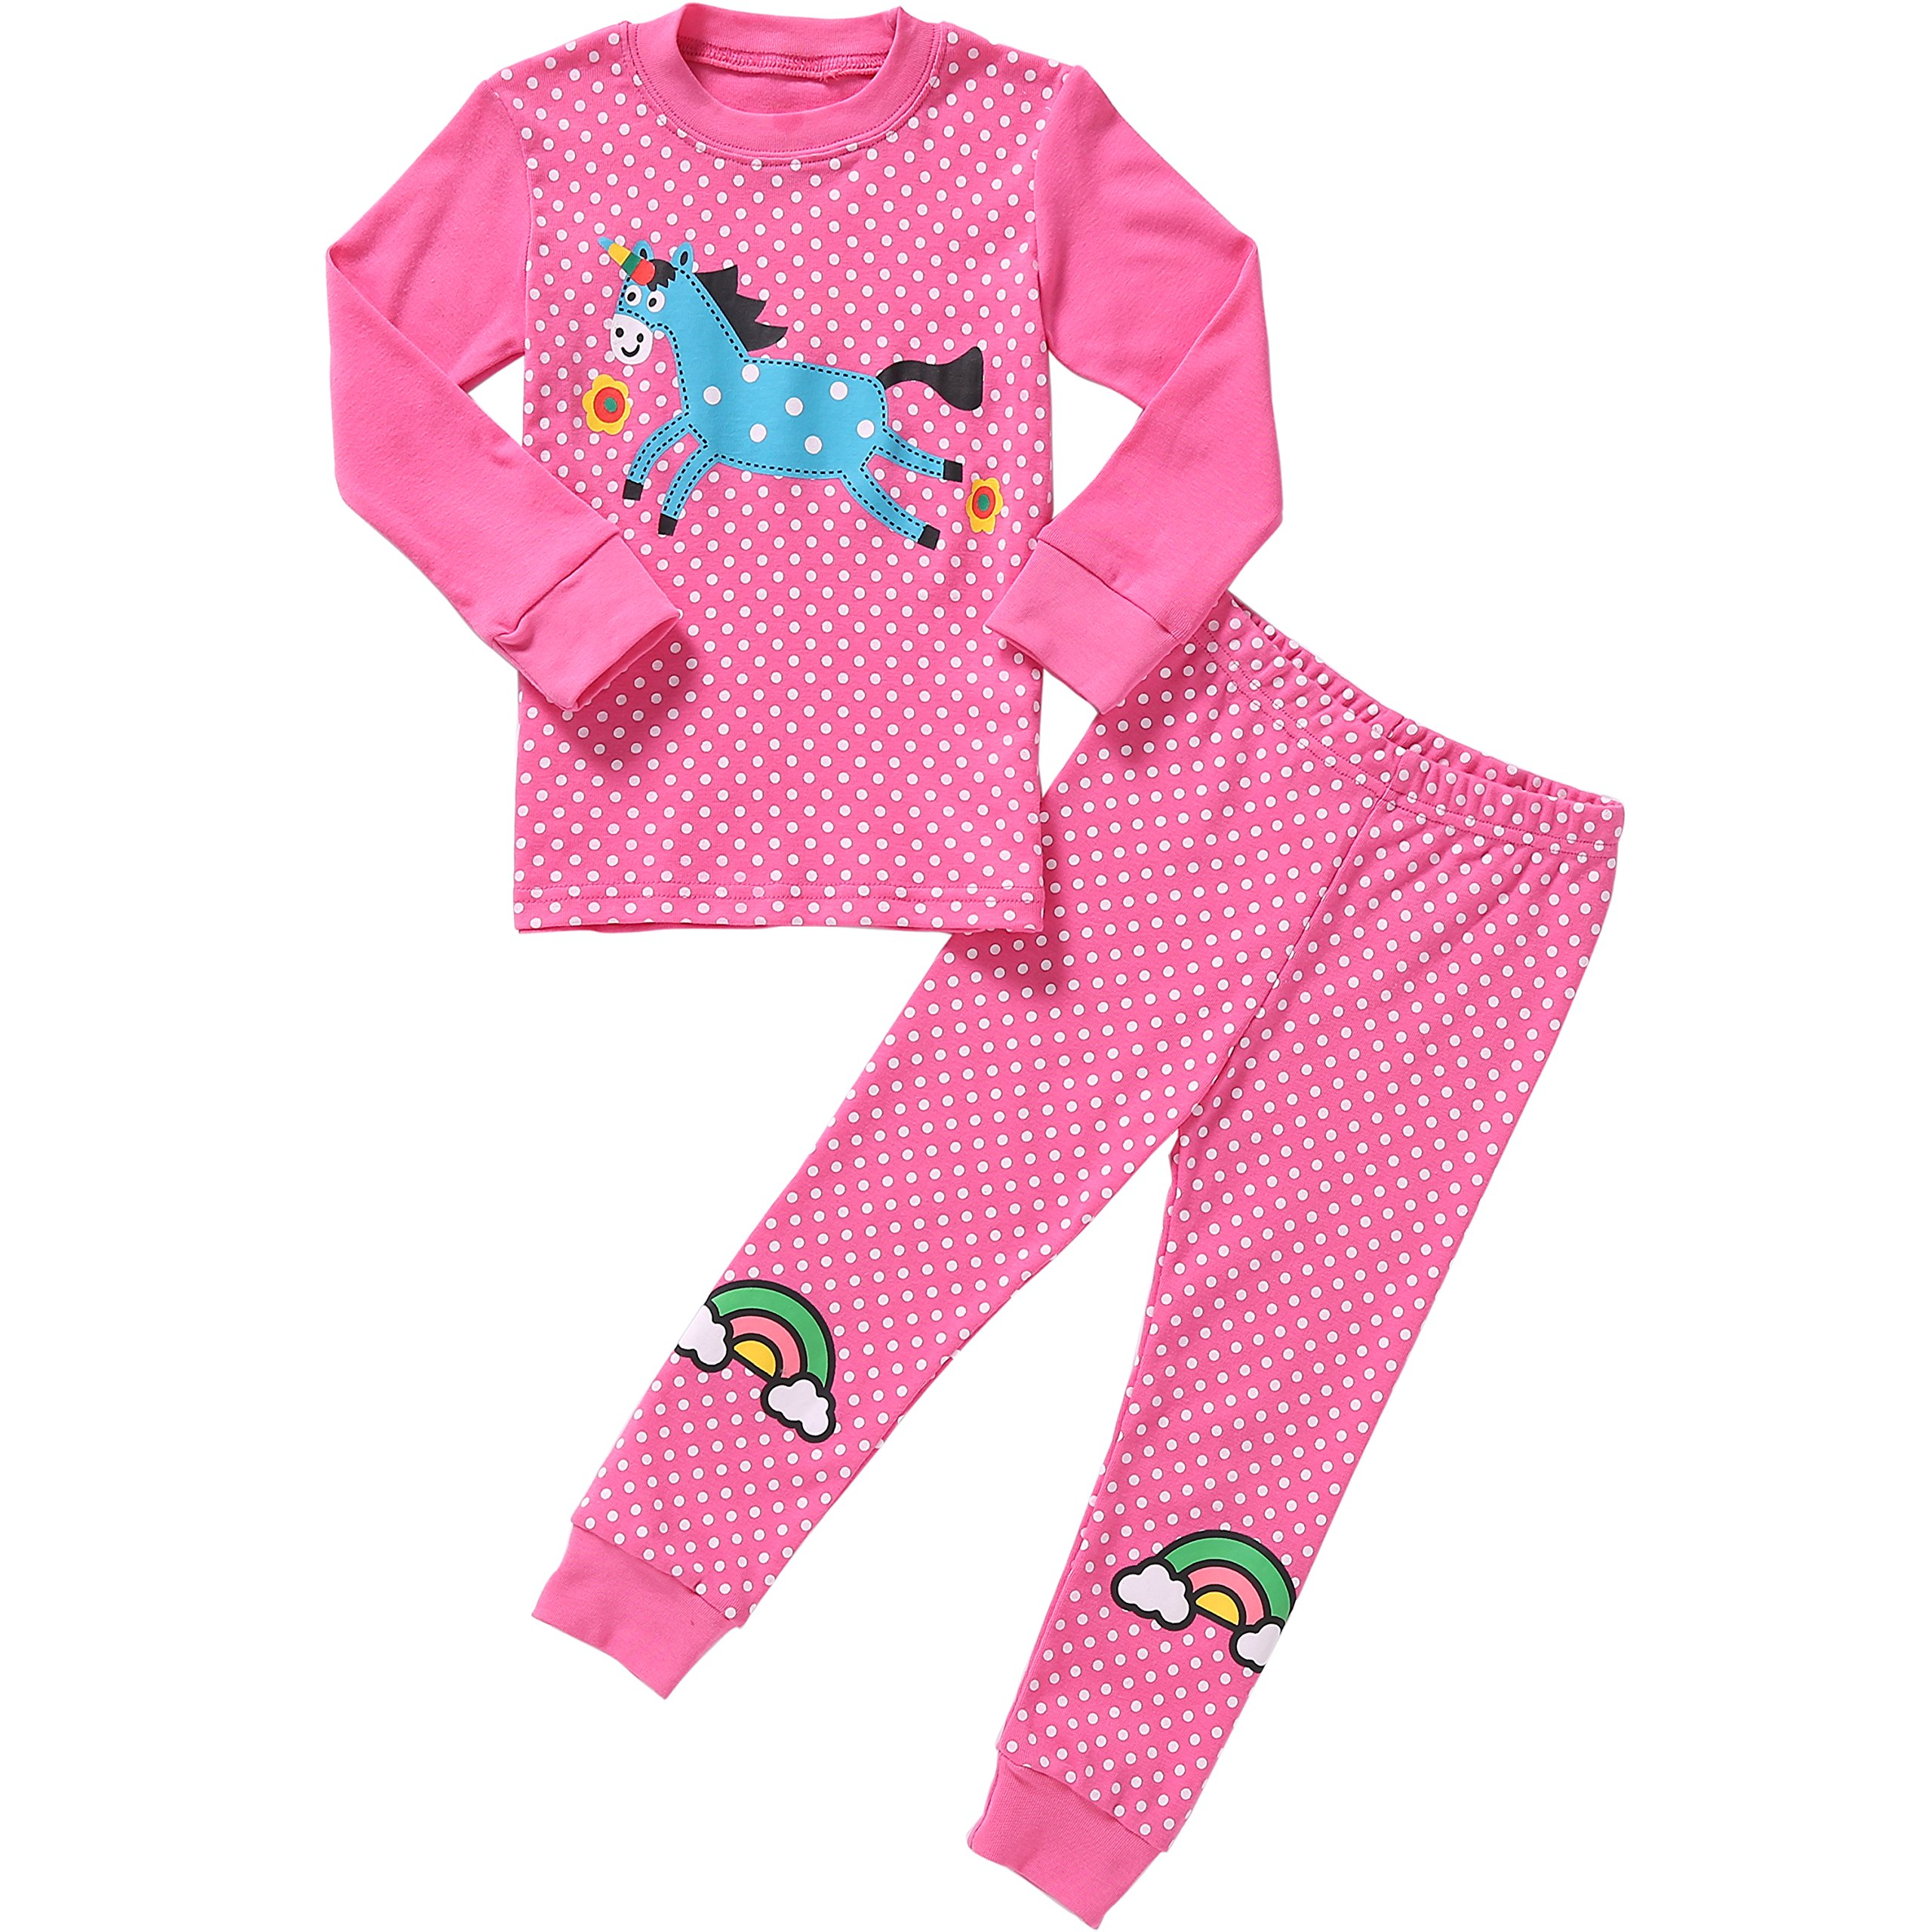 Pajamas for Girls Little Kids Long Sleeve Clothes Set Toddler Children Horse Sleepwear Size 6